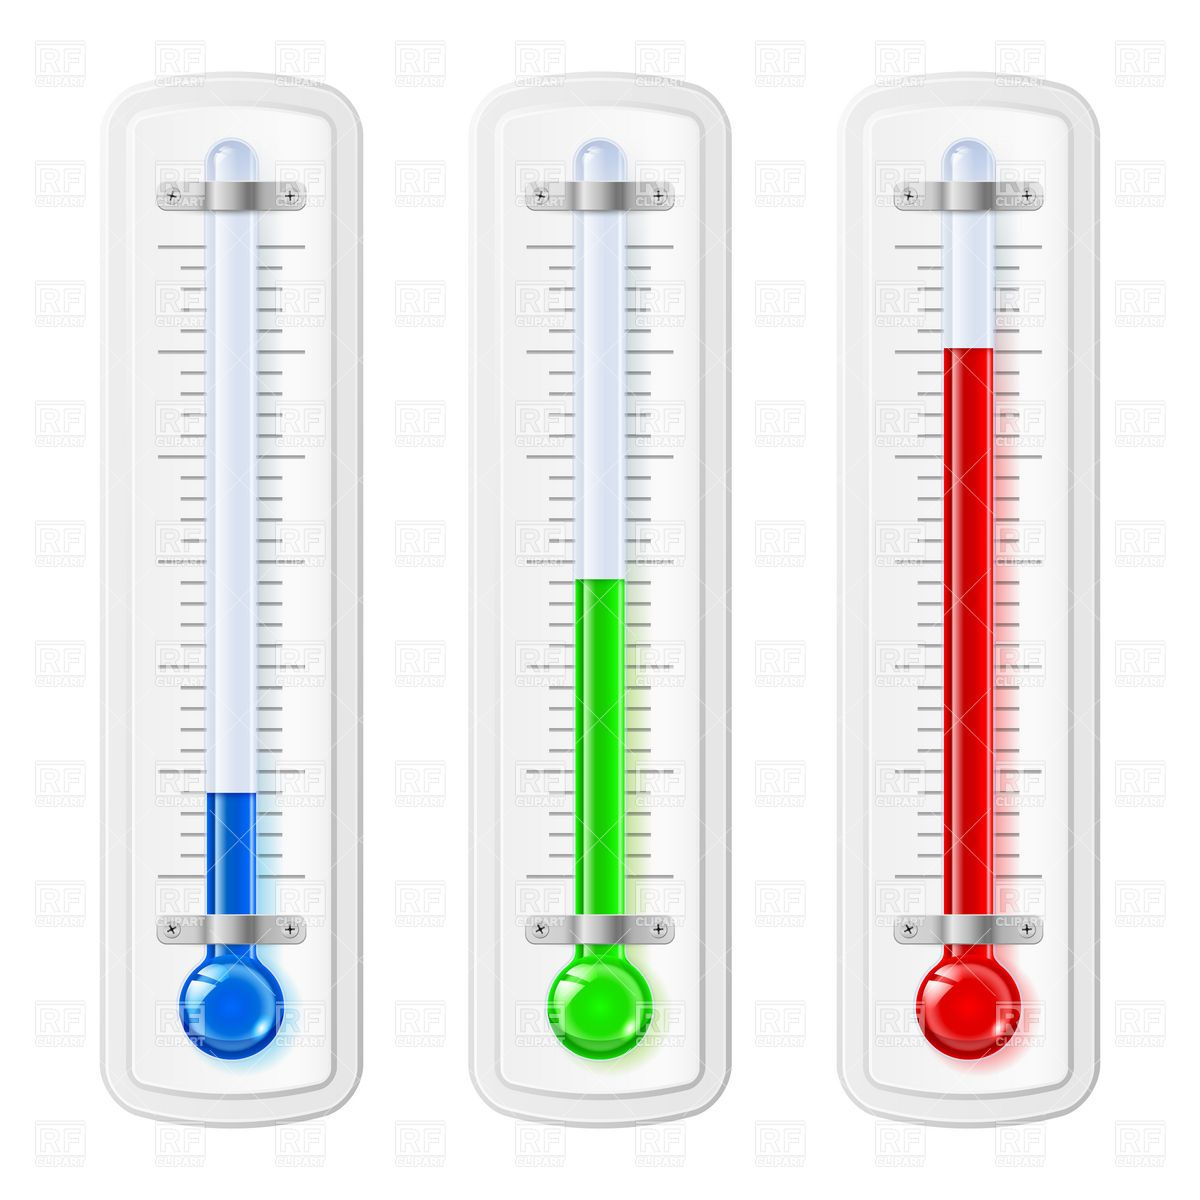 Weather Thermometer Clip Art